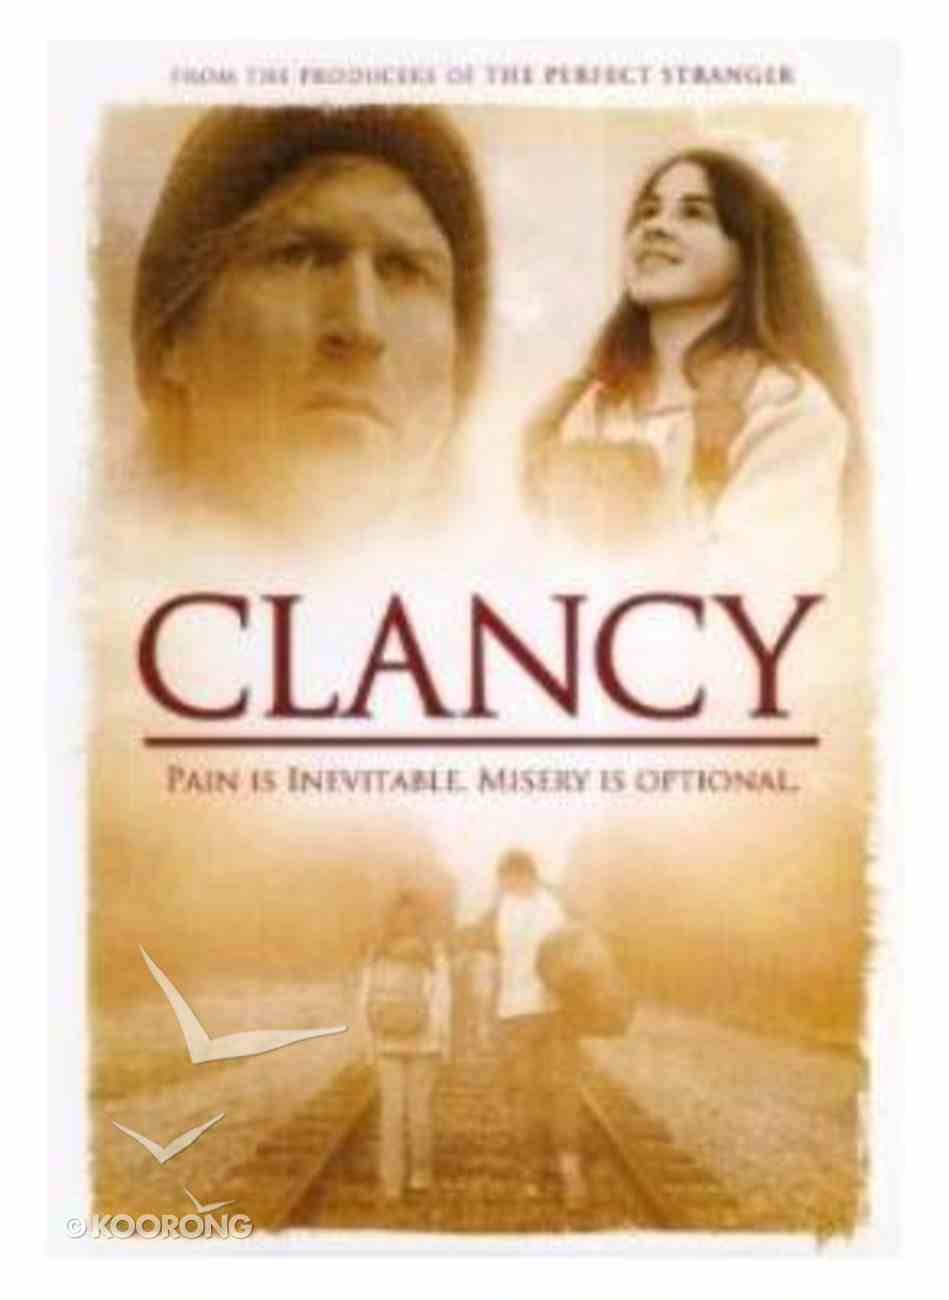 Scr DVD Clancy: Screening Licence (0-200 Congregation Size) Digital Licence